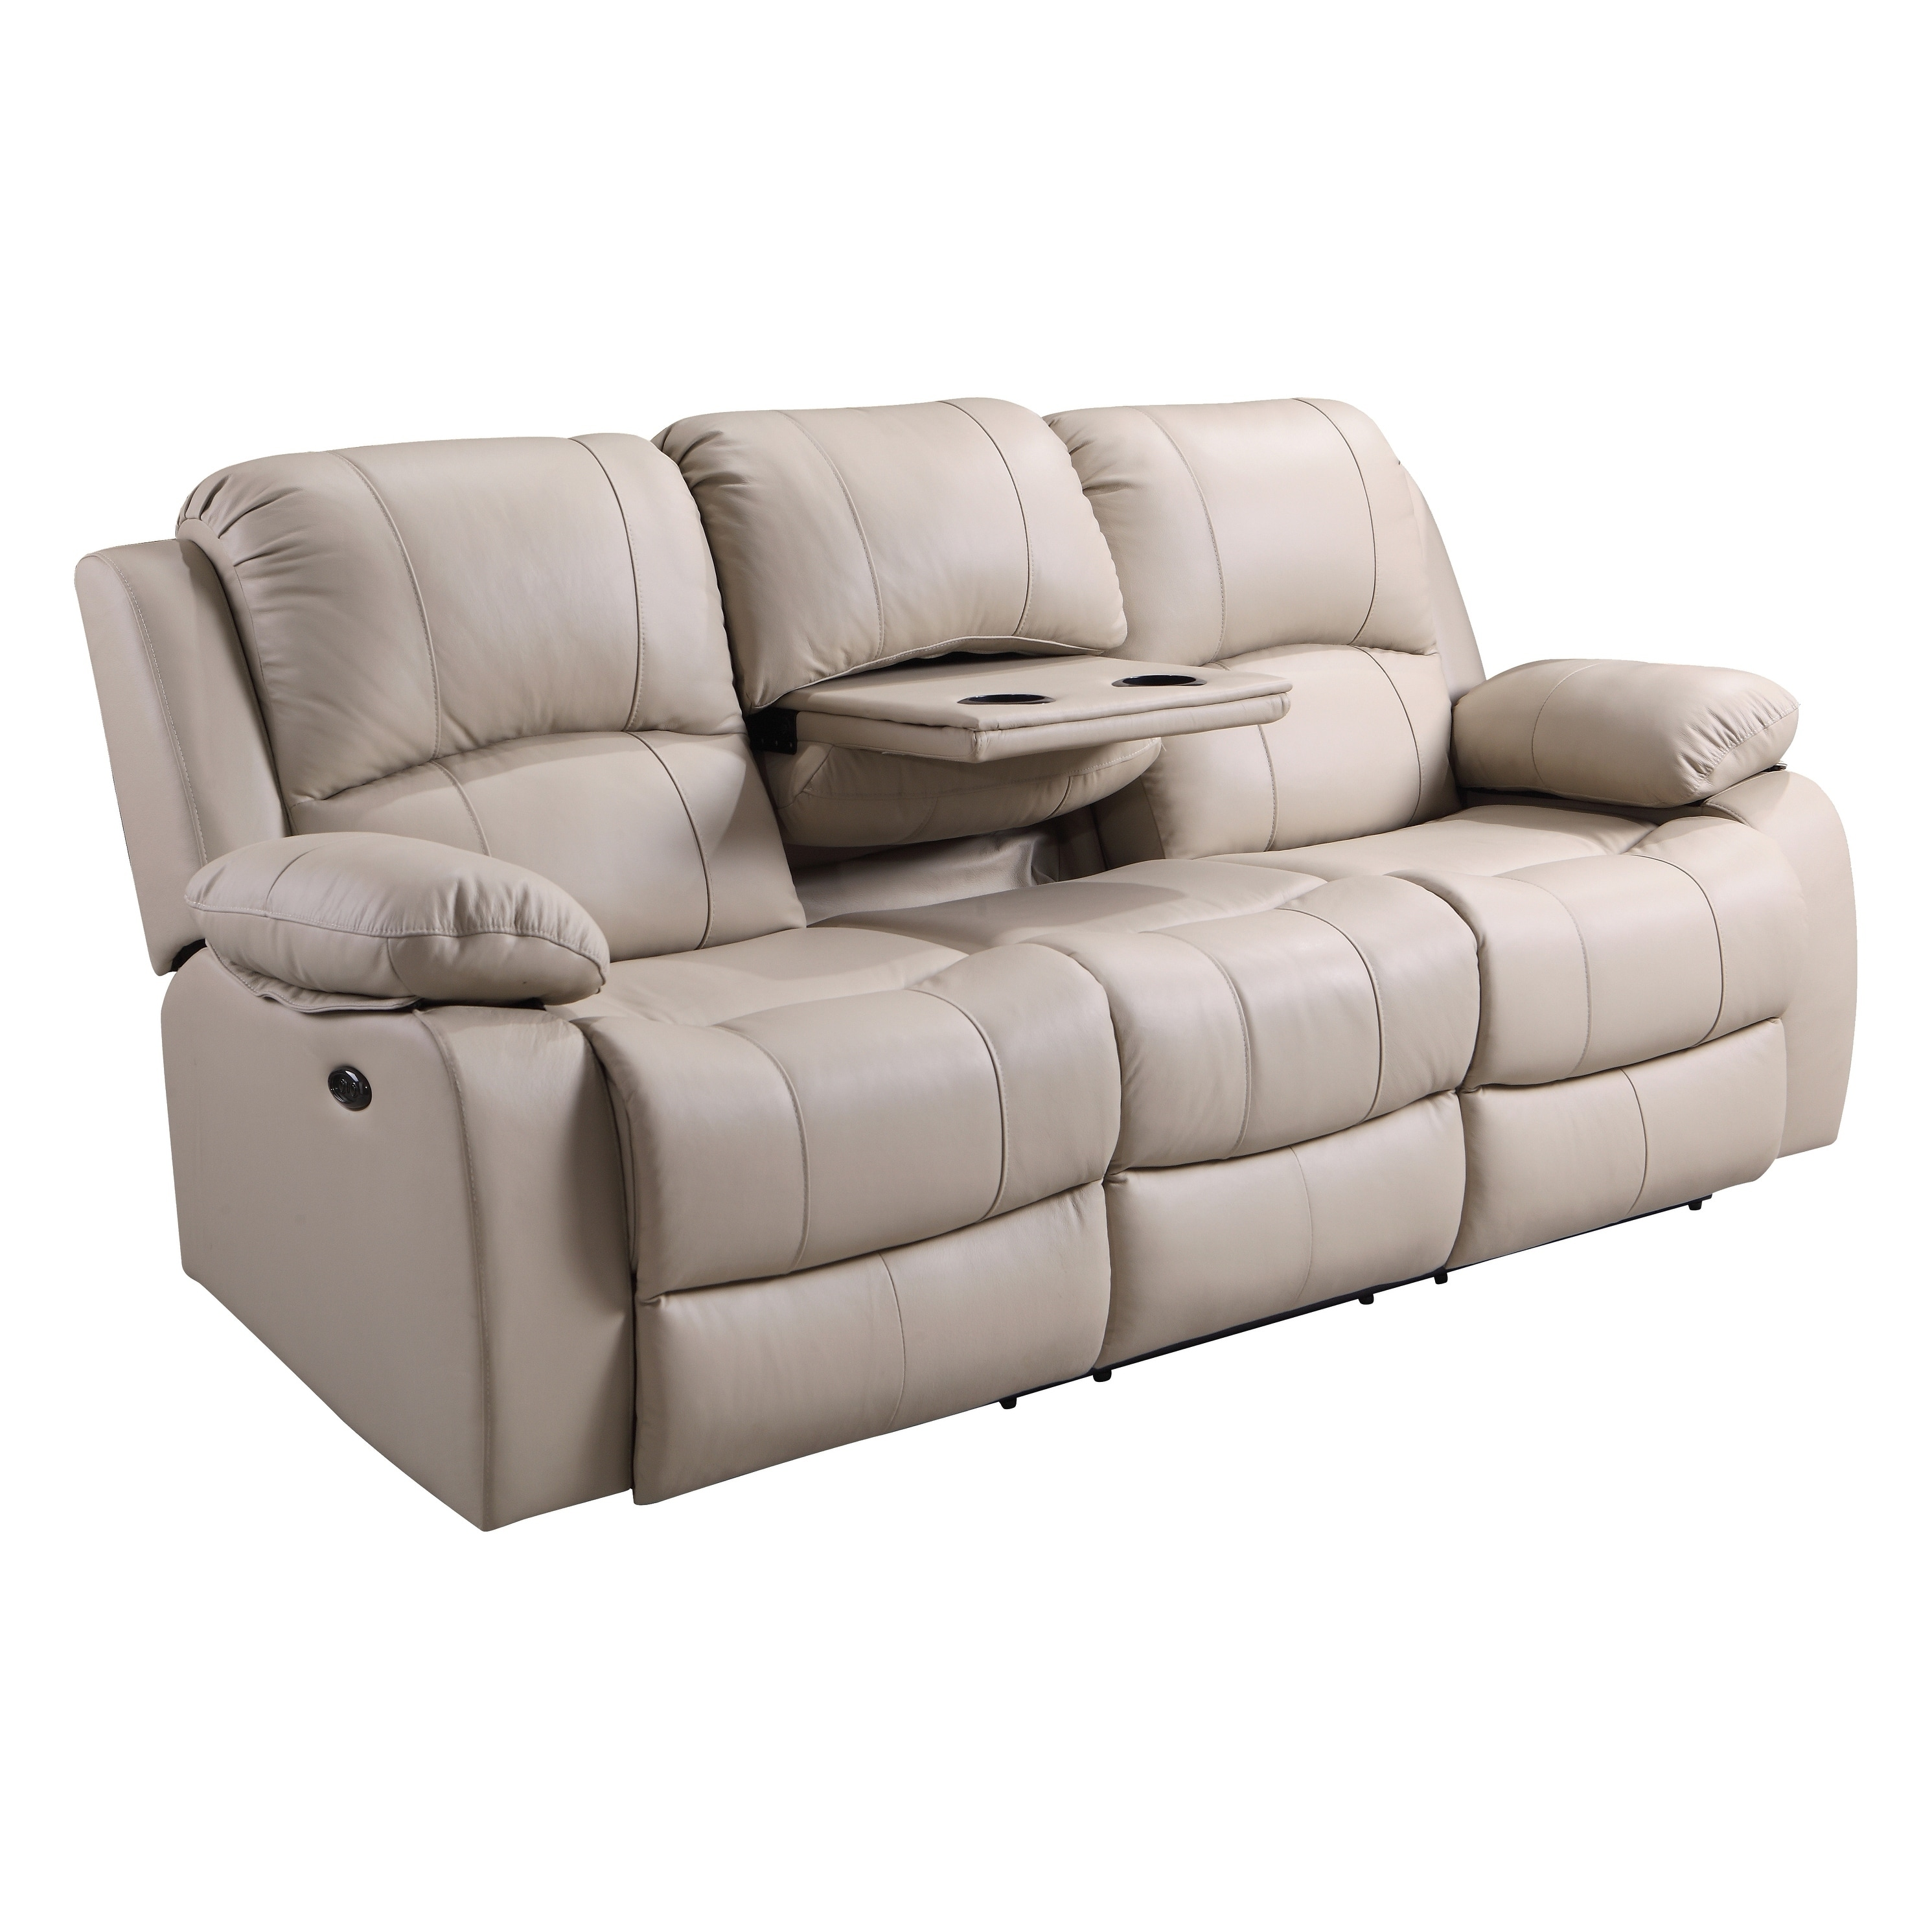 Italian Recliner Sofa Manufacturers   Furniture From Leading ...